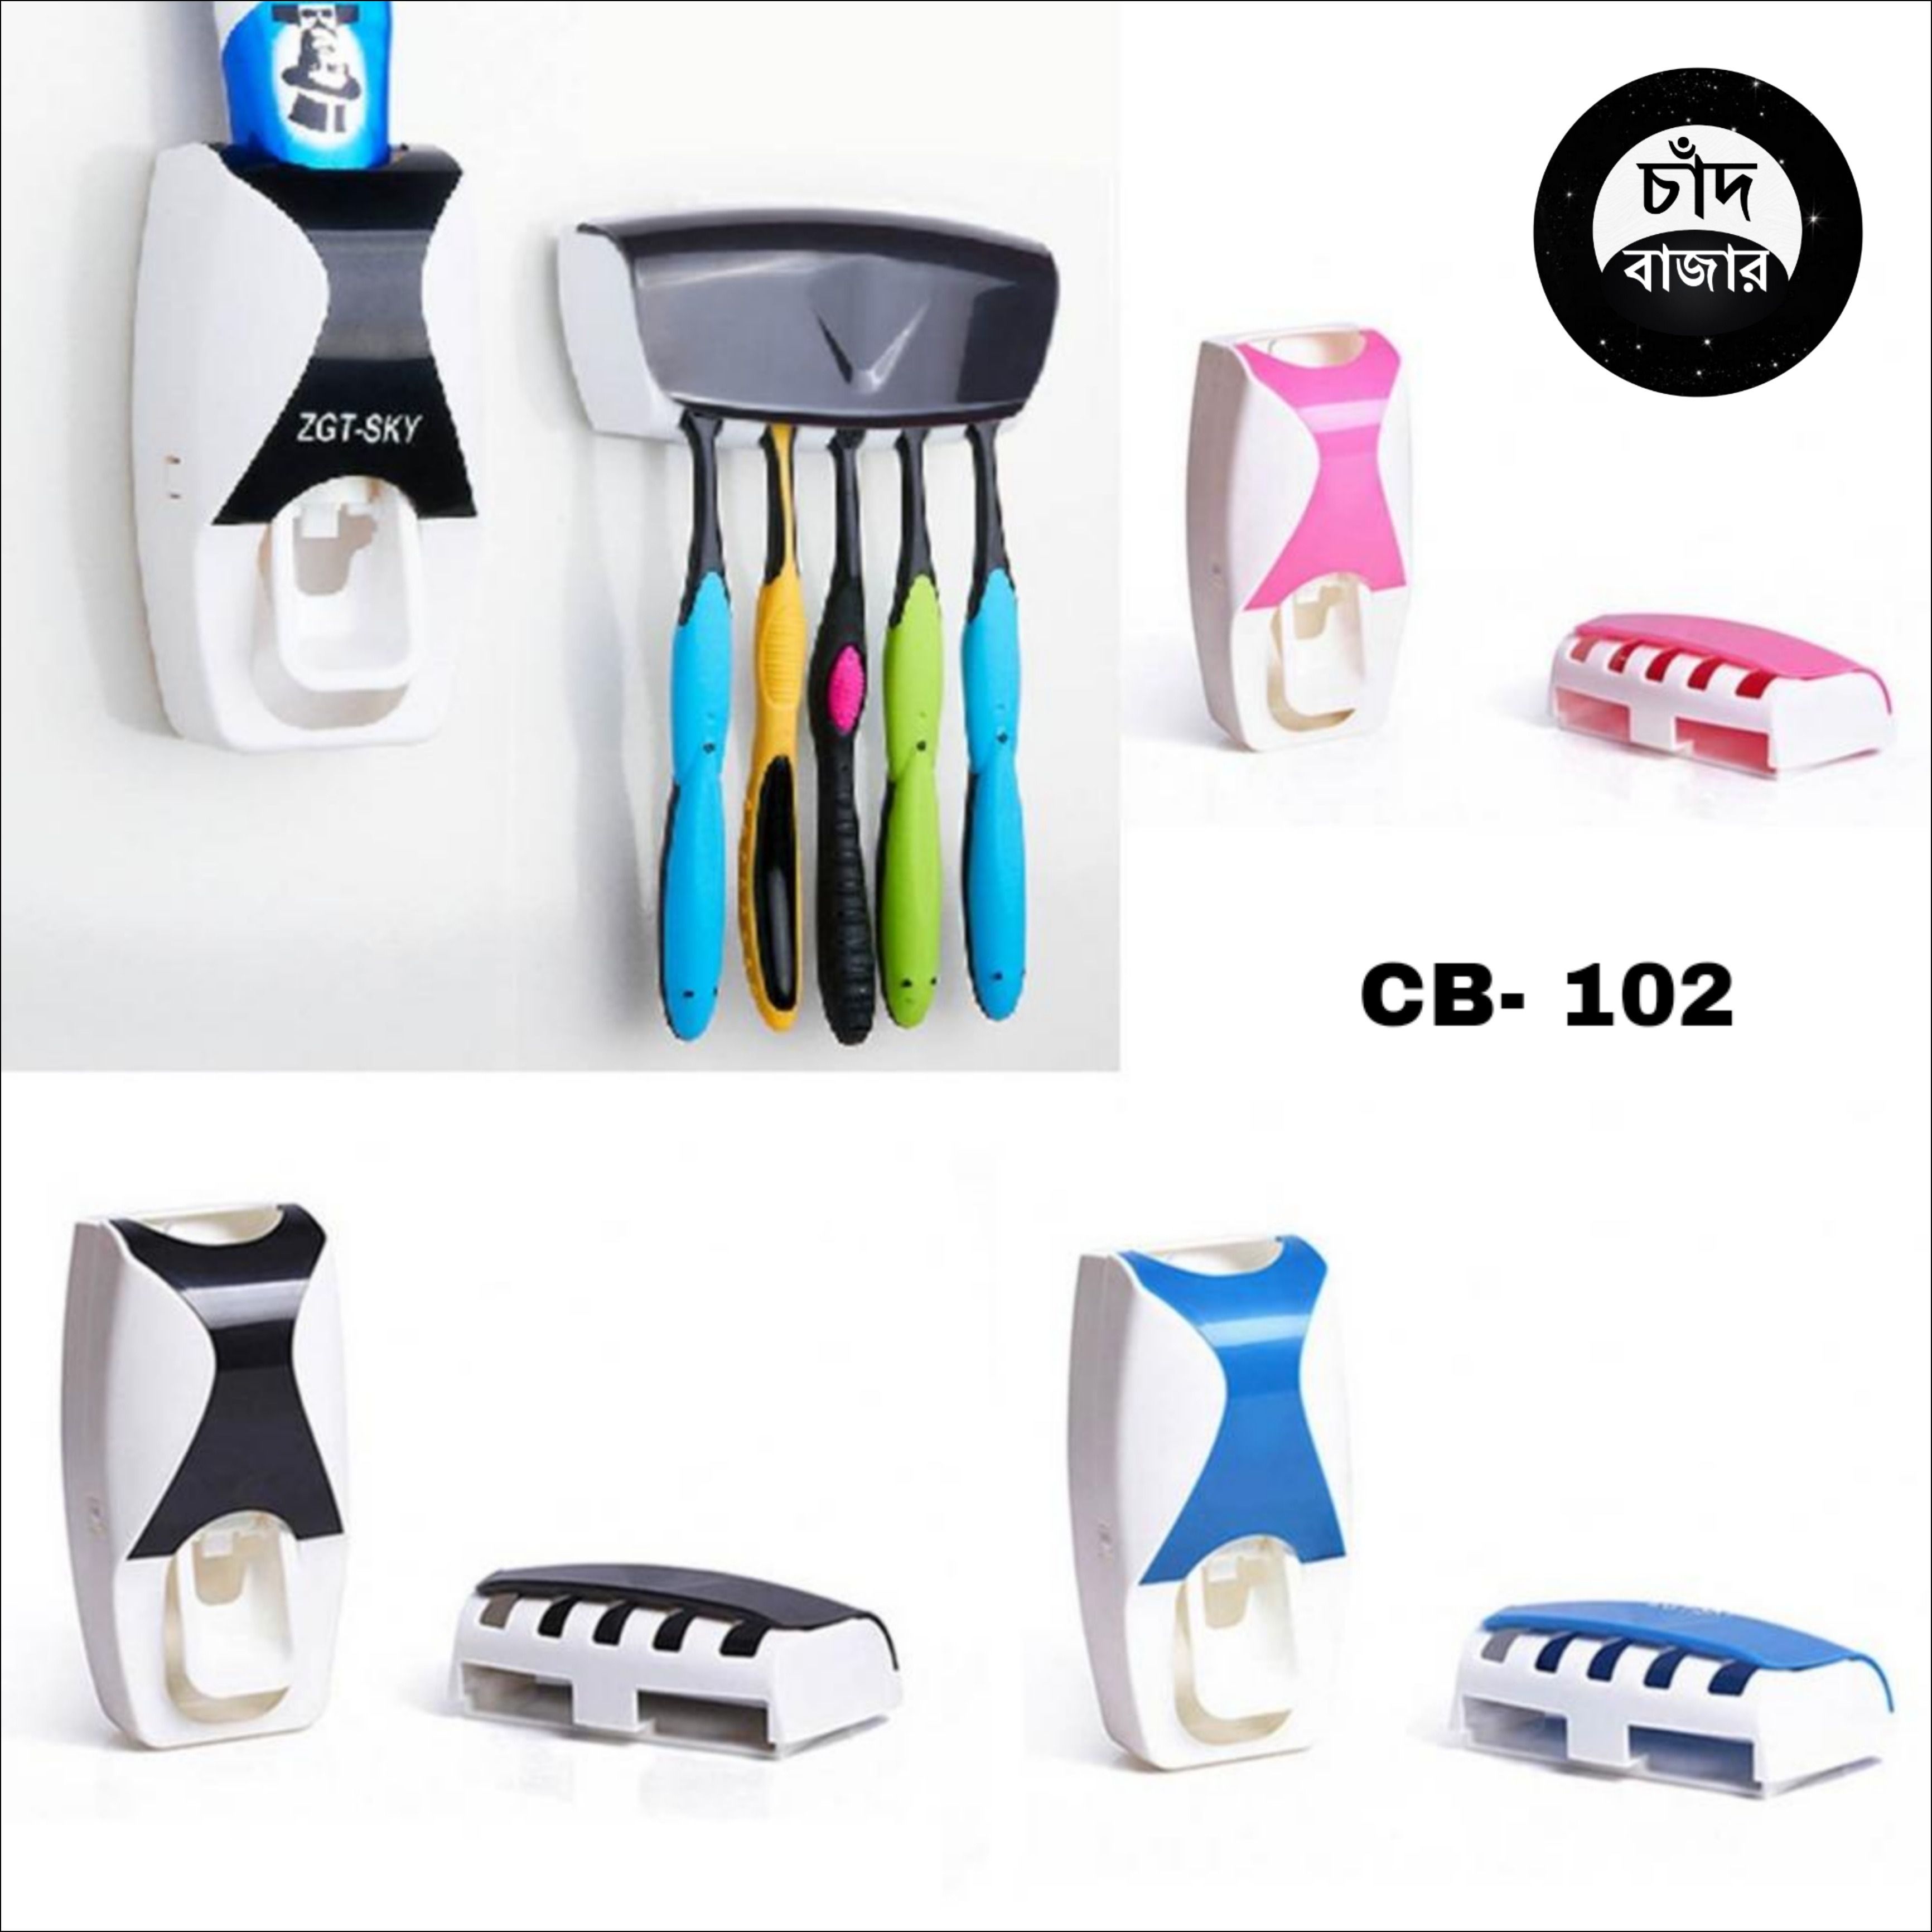 Automatic Toothpaste Dispenser with Toothbrush Holder - Multicolor